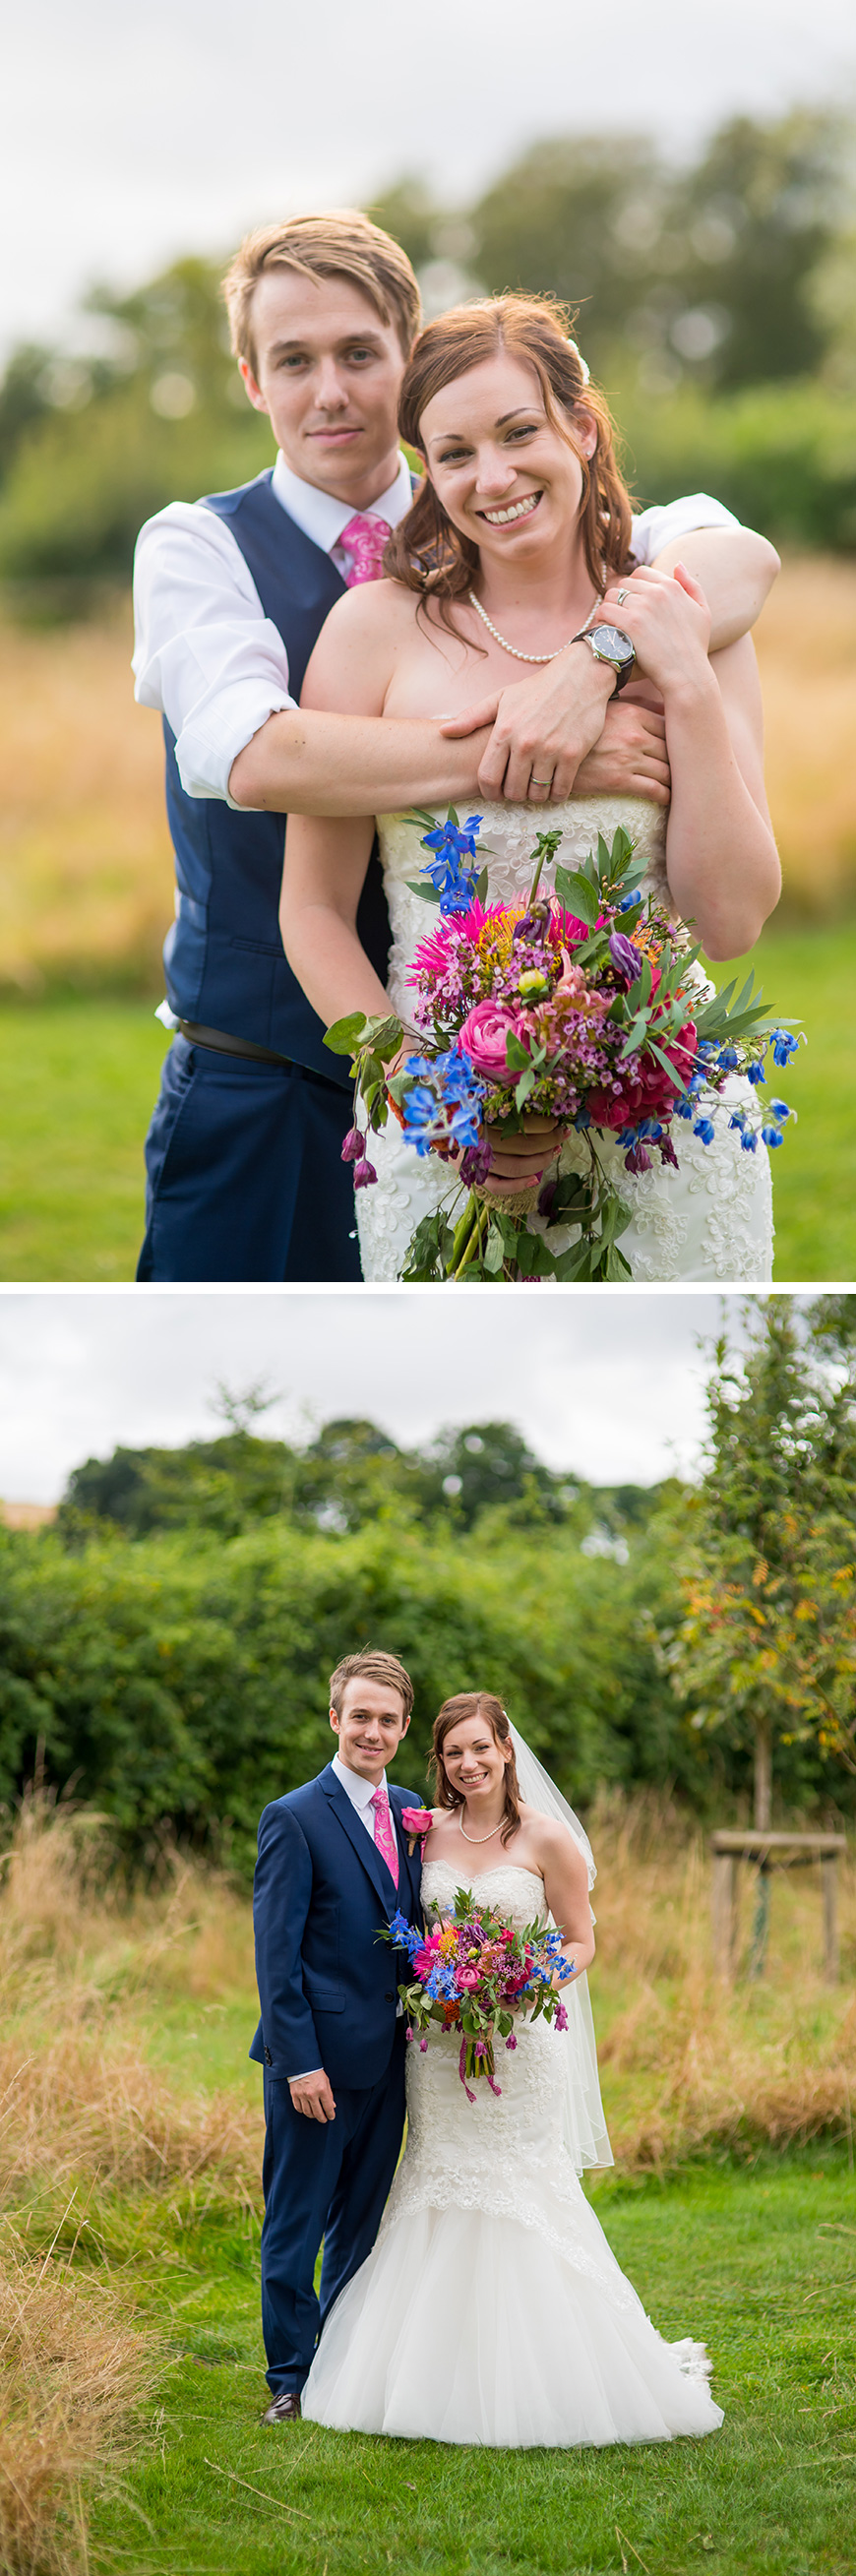 Real Wedding - Rebecca and Michael's Romantic Summer Wedding at Clock Barn | CHWV